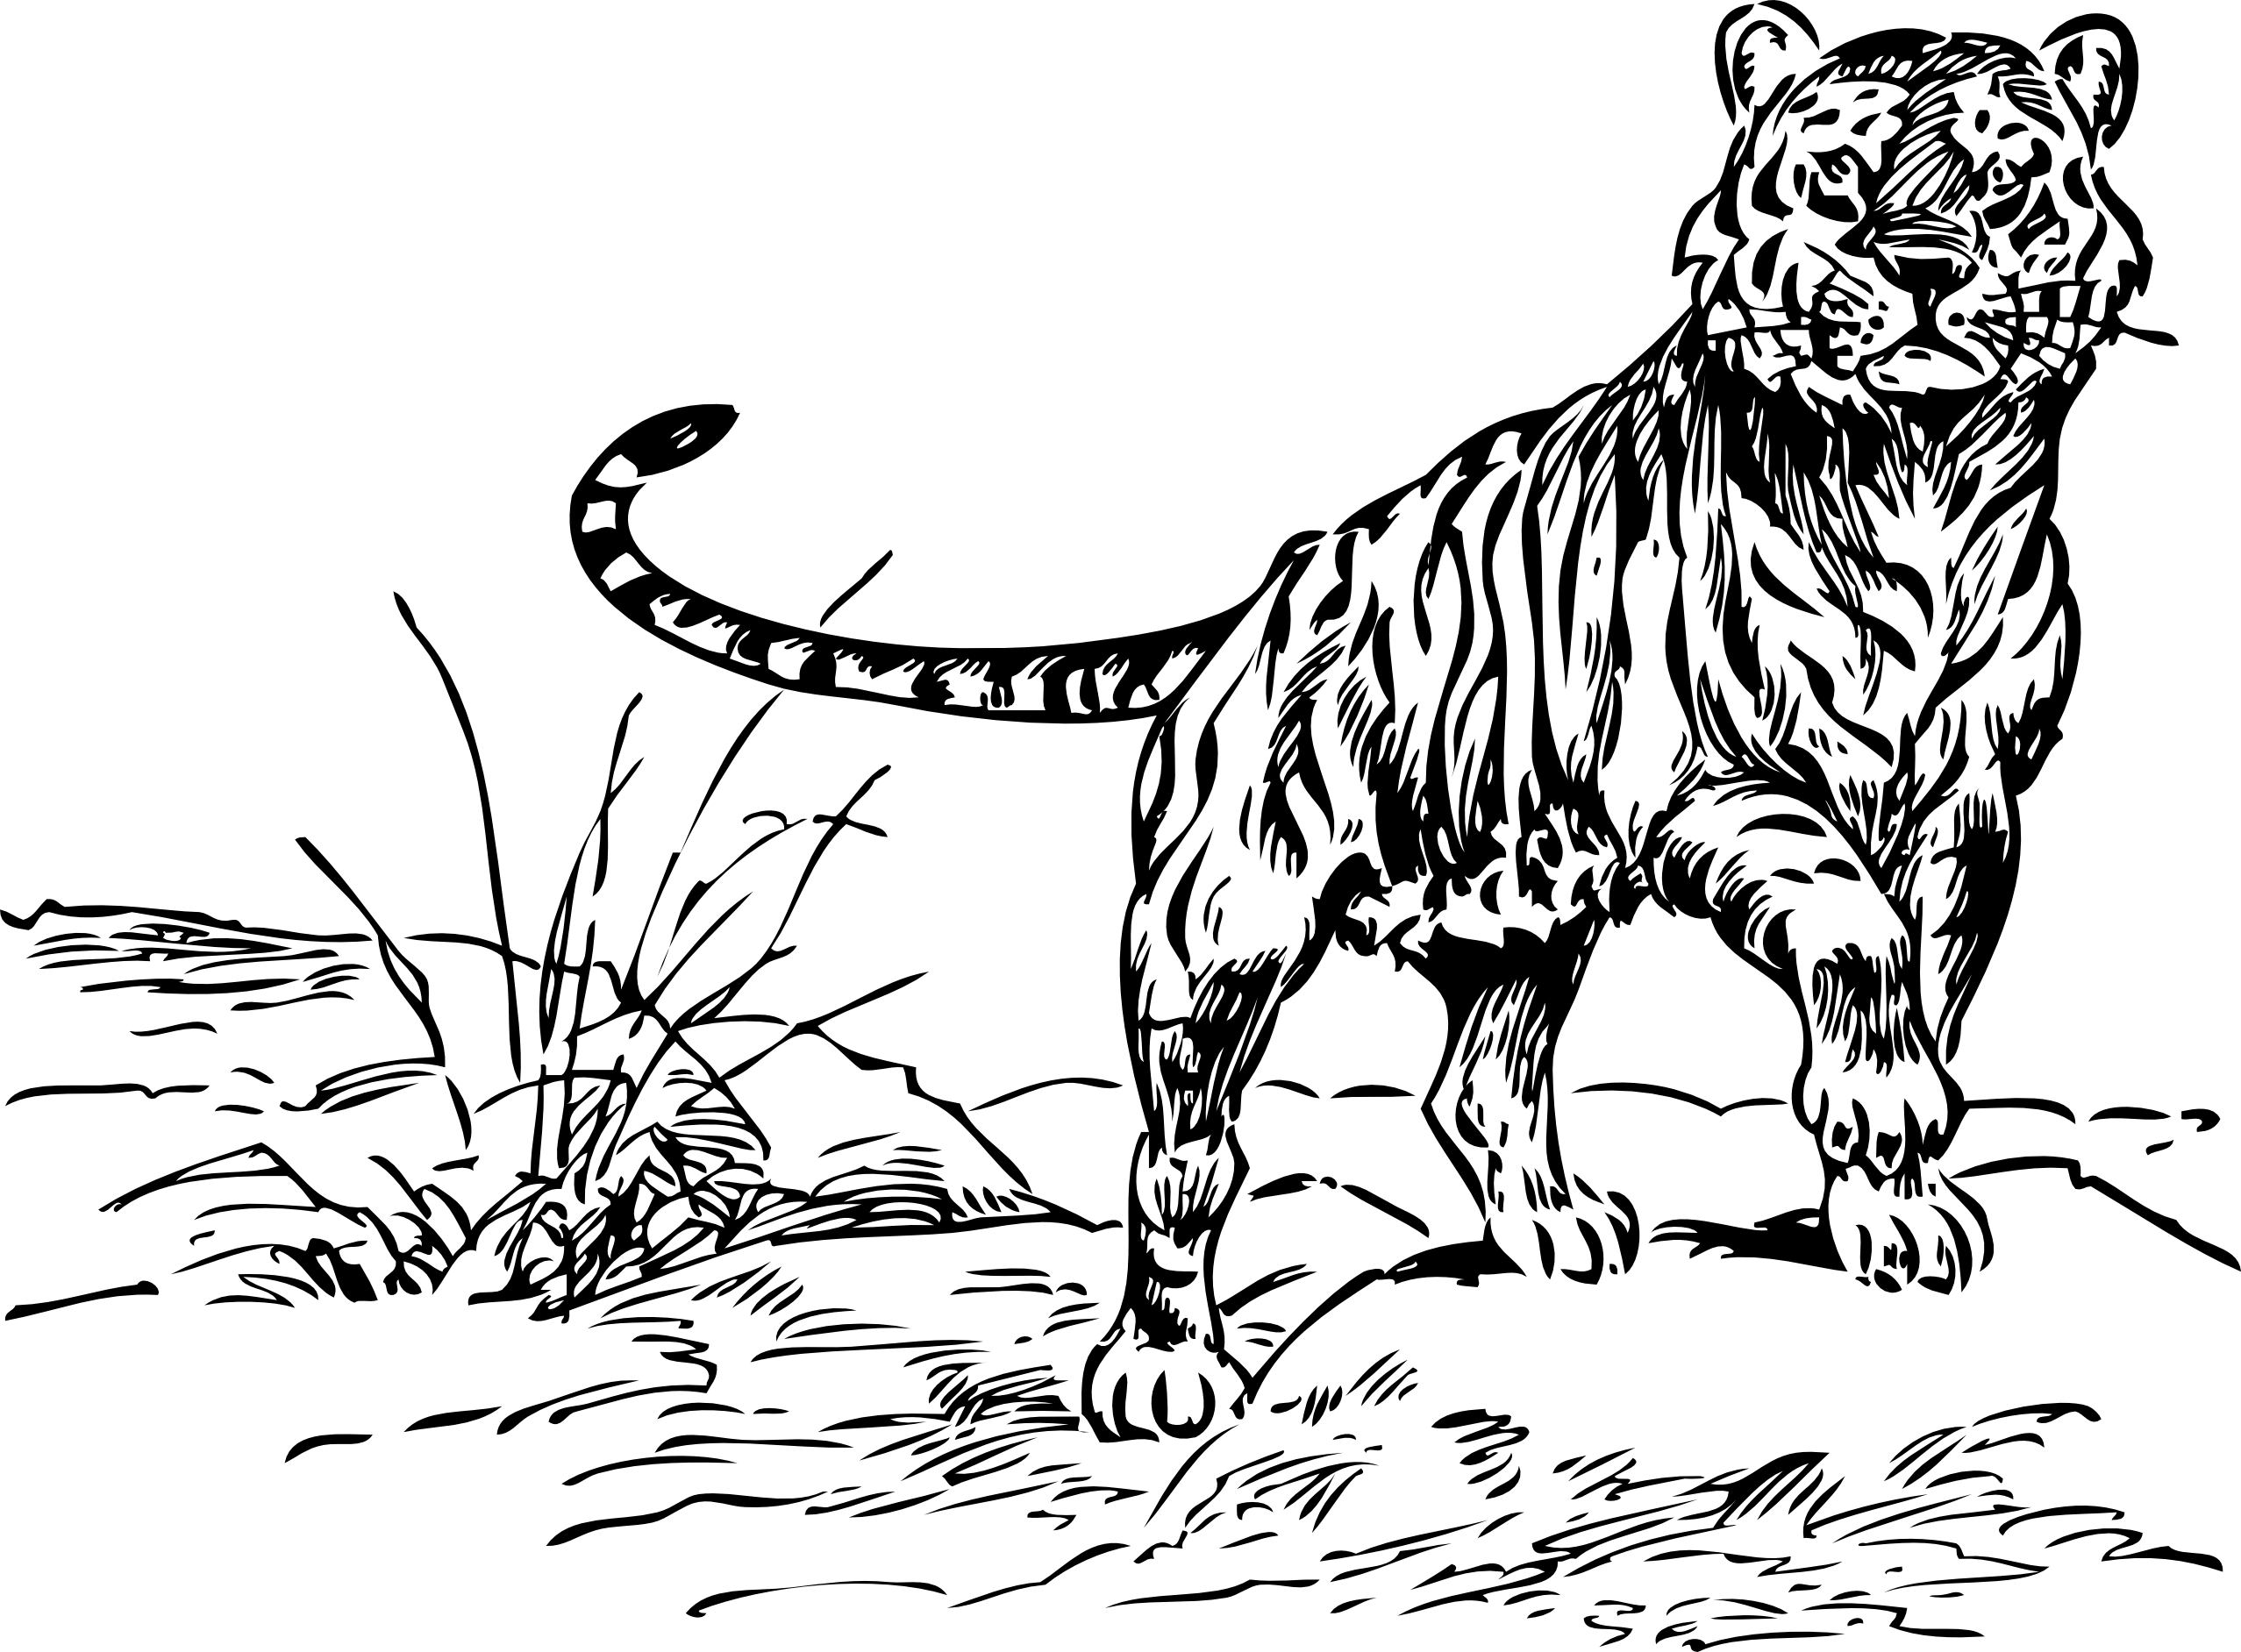 Tiger Black And White Black And White Tiger Clipart Clipart